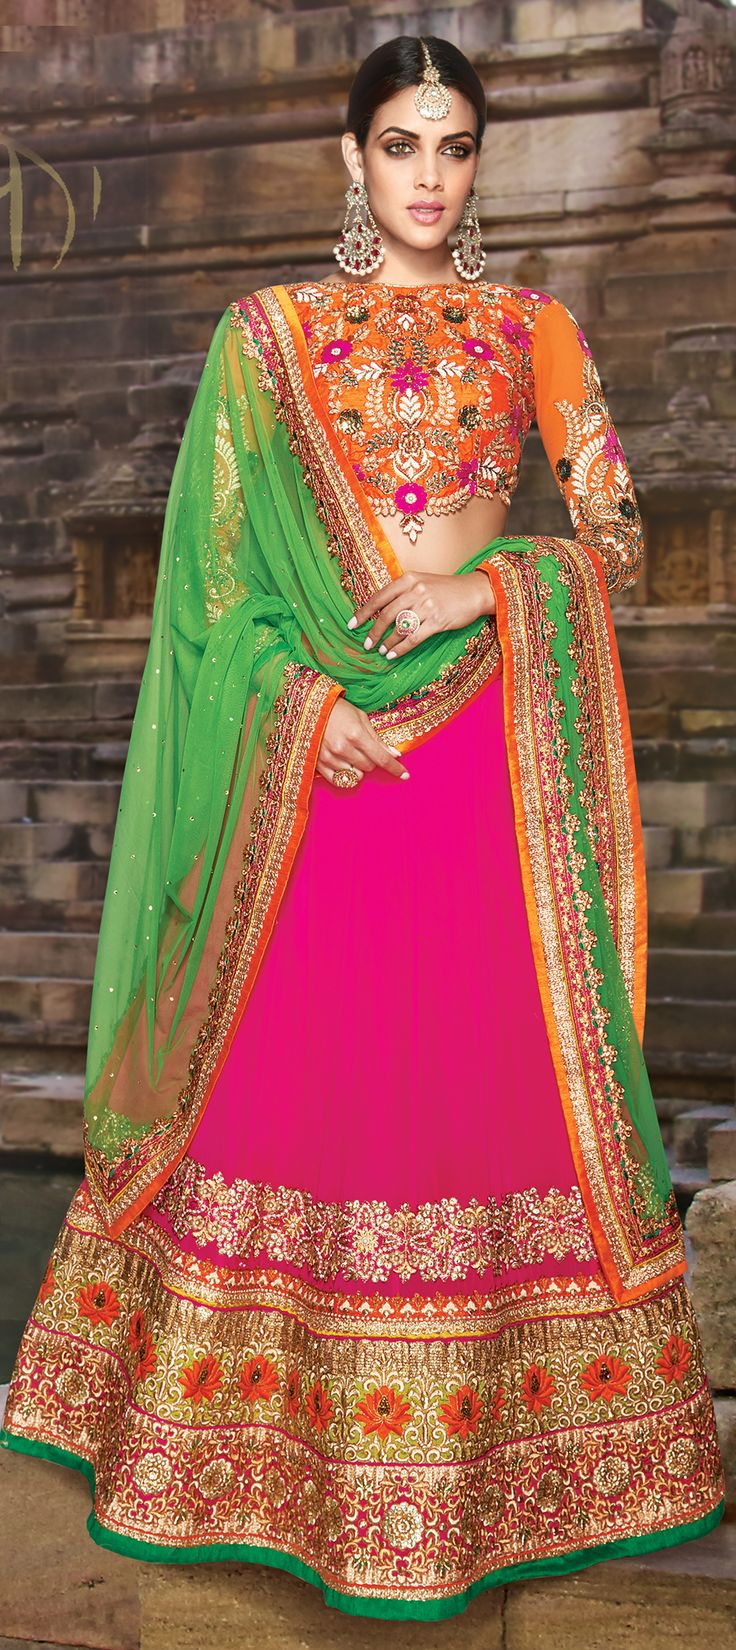 185213: Pink and Majenta color family Bridal Lehenga, Mehendi & Sangeet Lehenga .